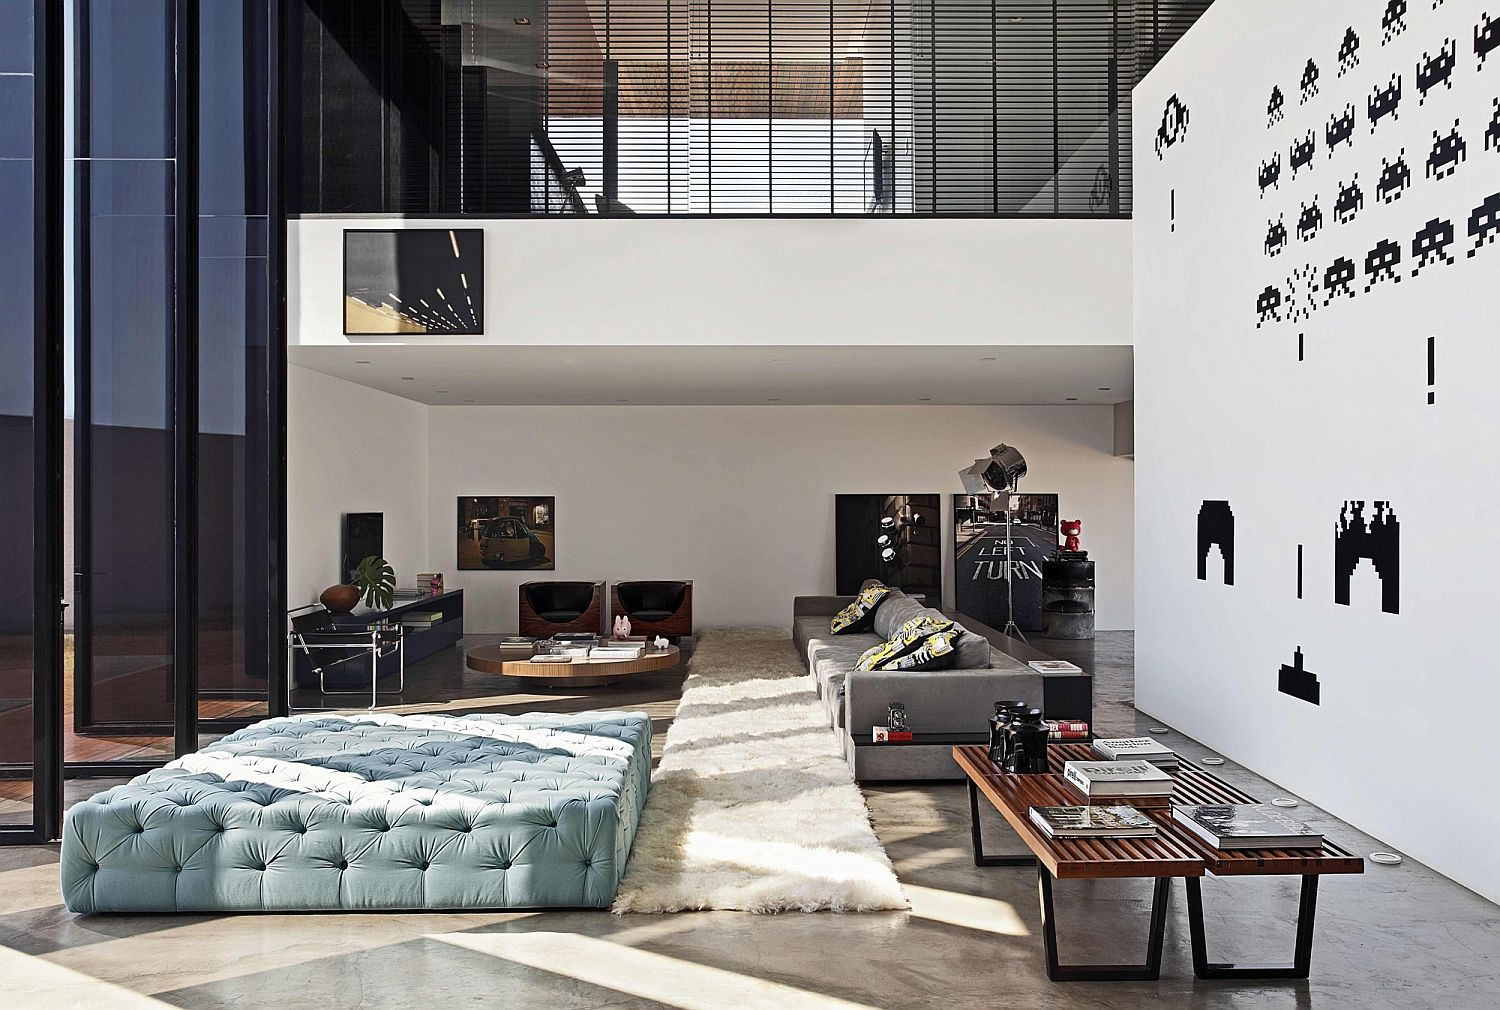 Central-double-height-living-area-with-ample-lighting